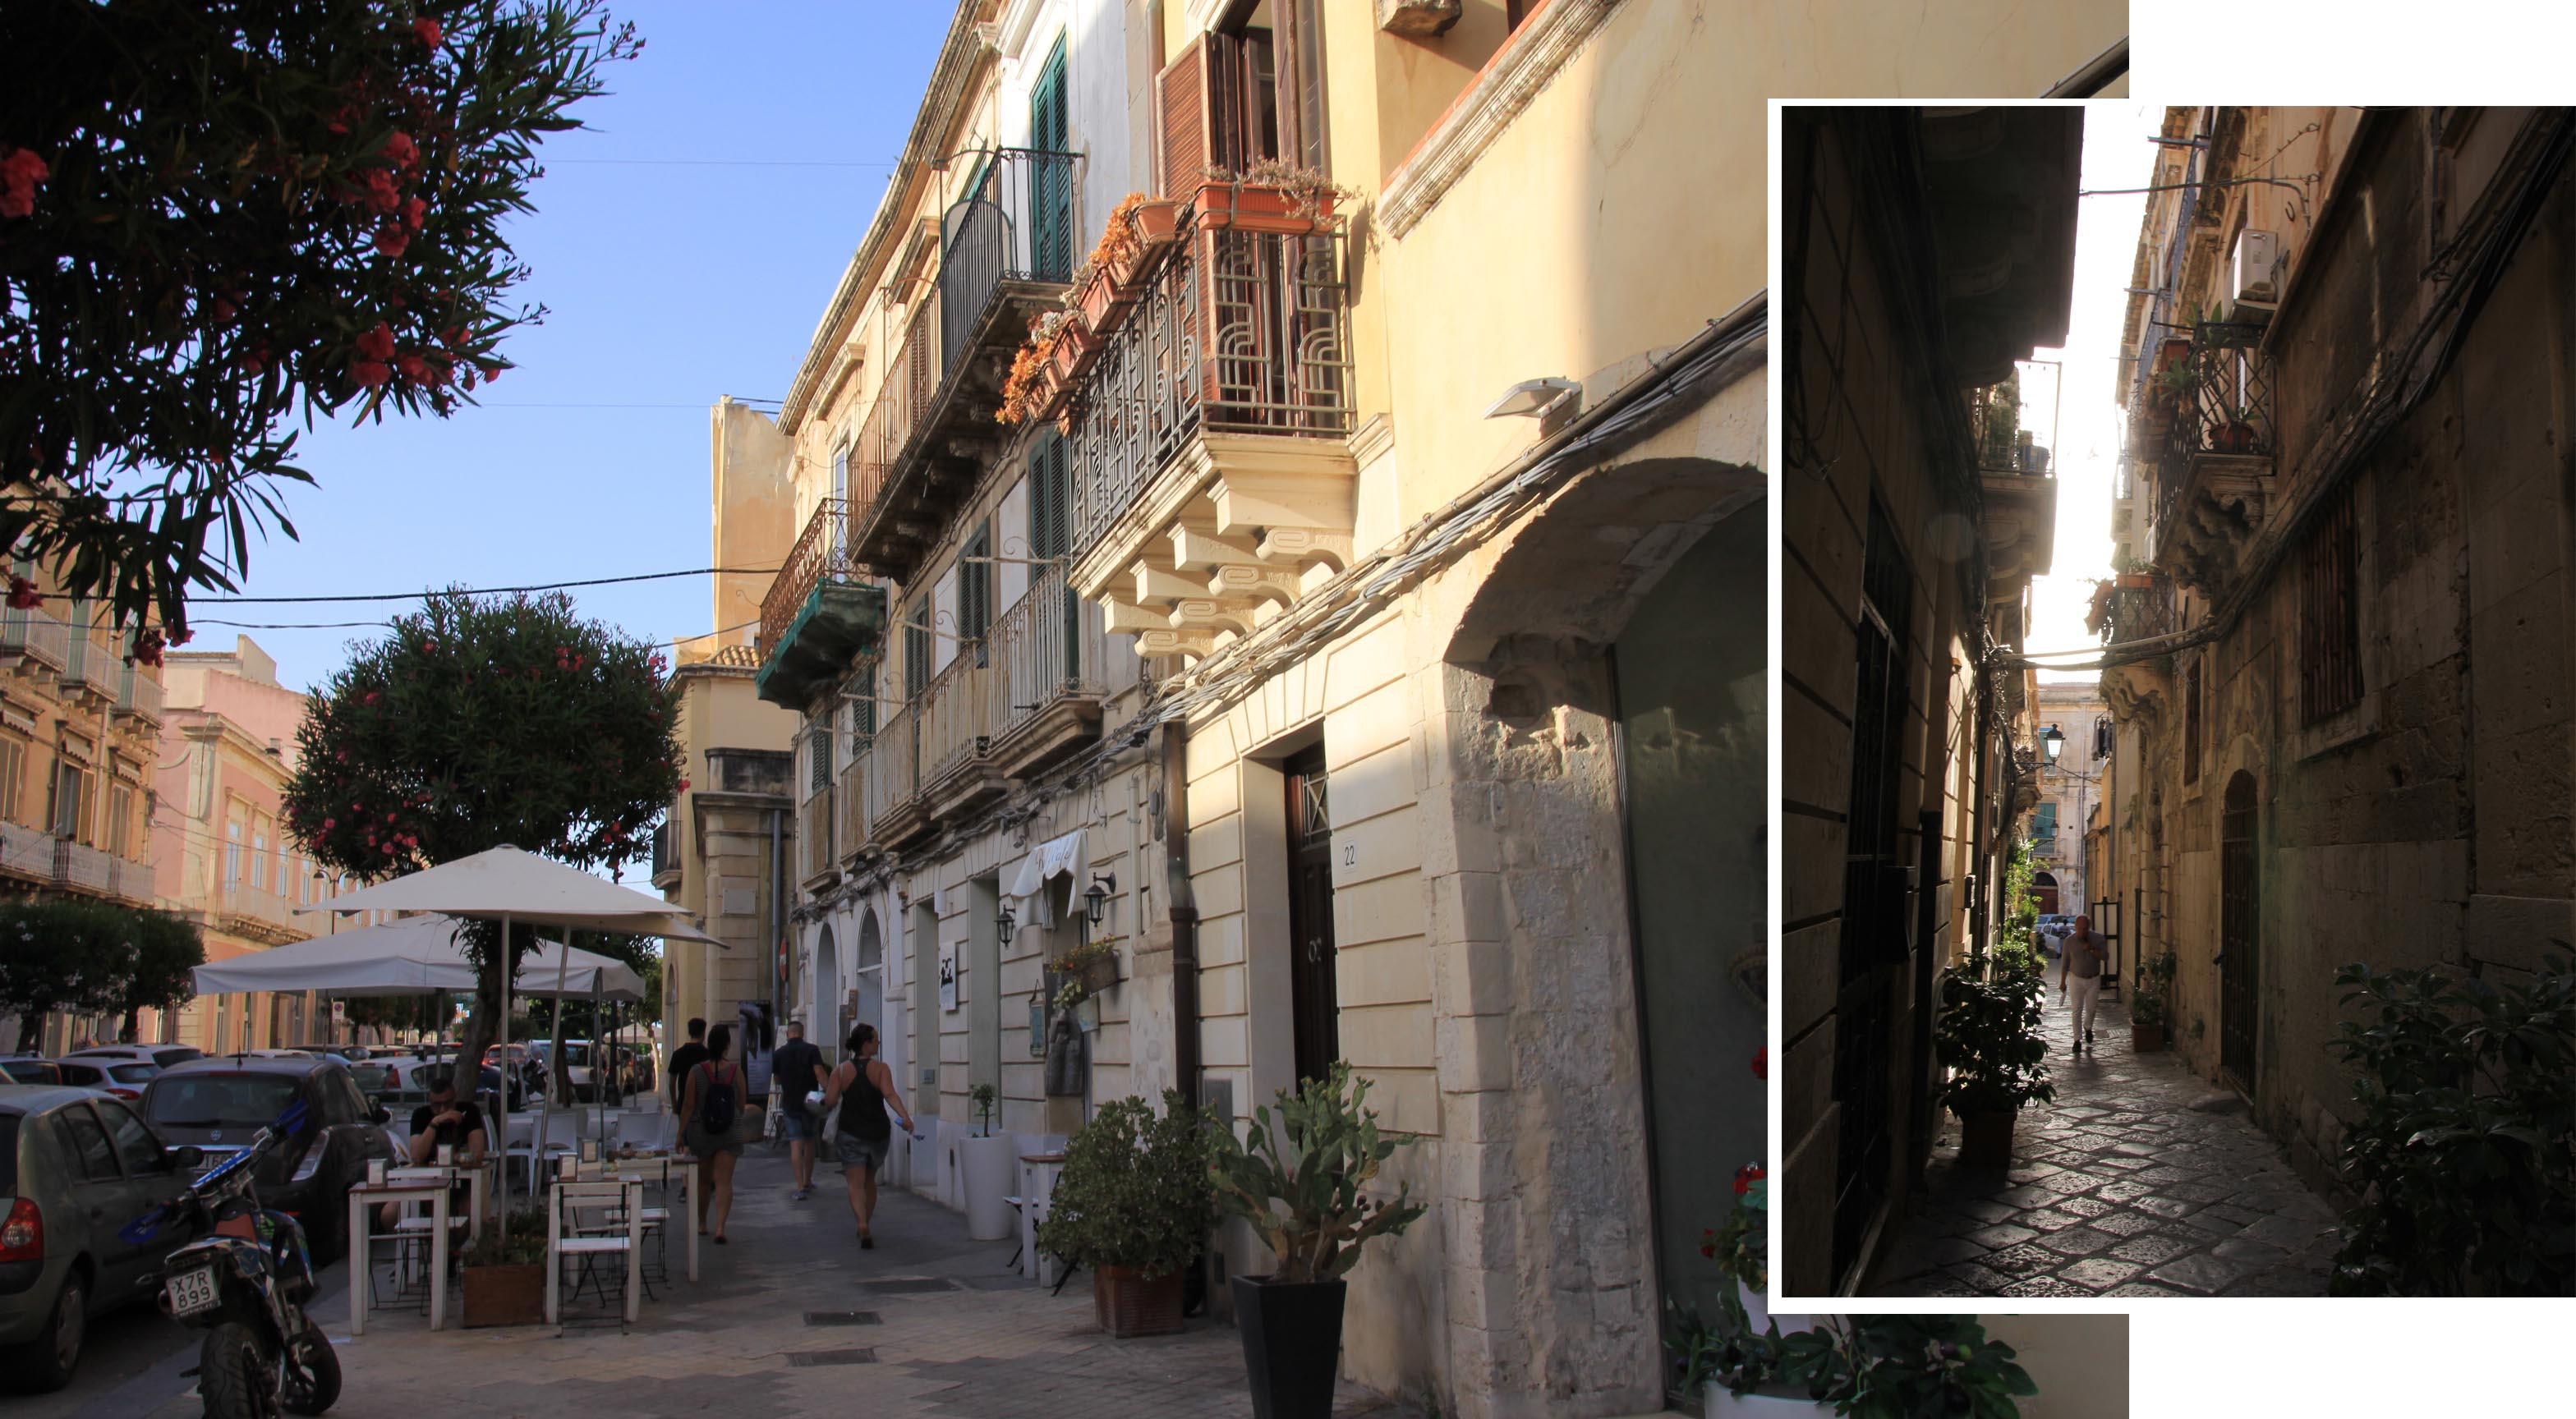 Streets and alleys of Ortigia